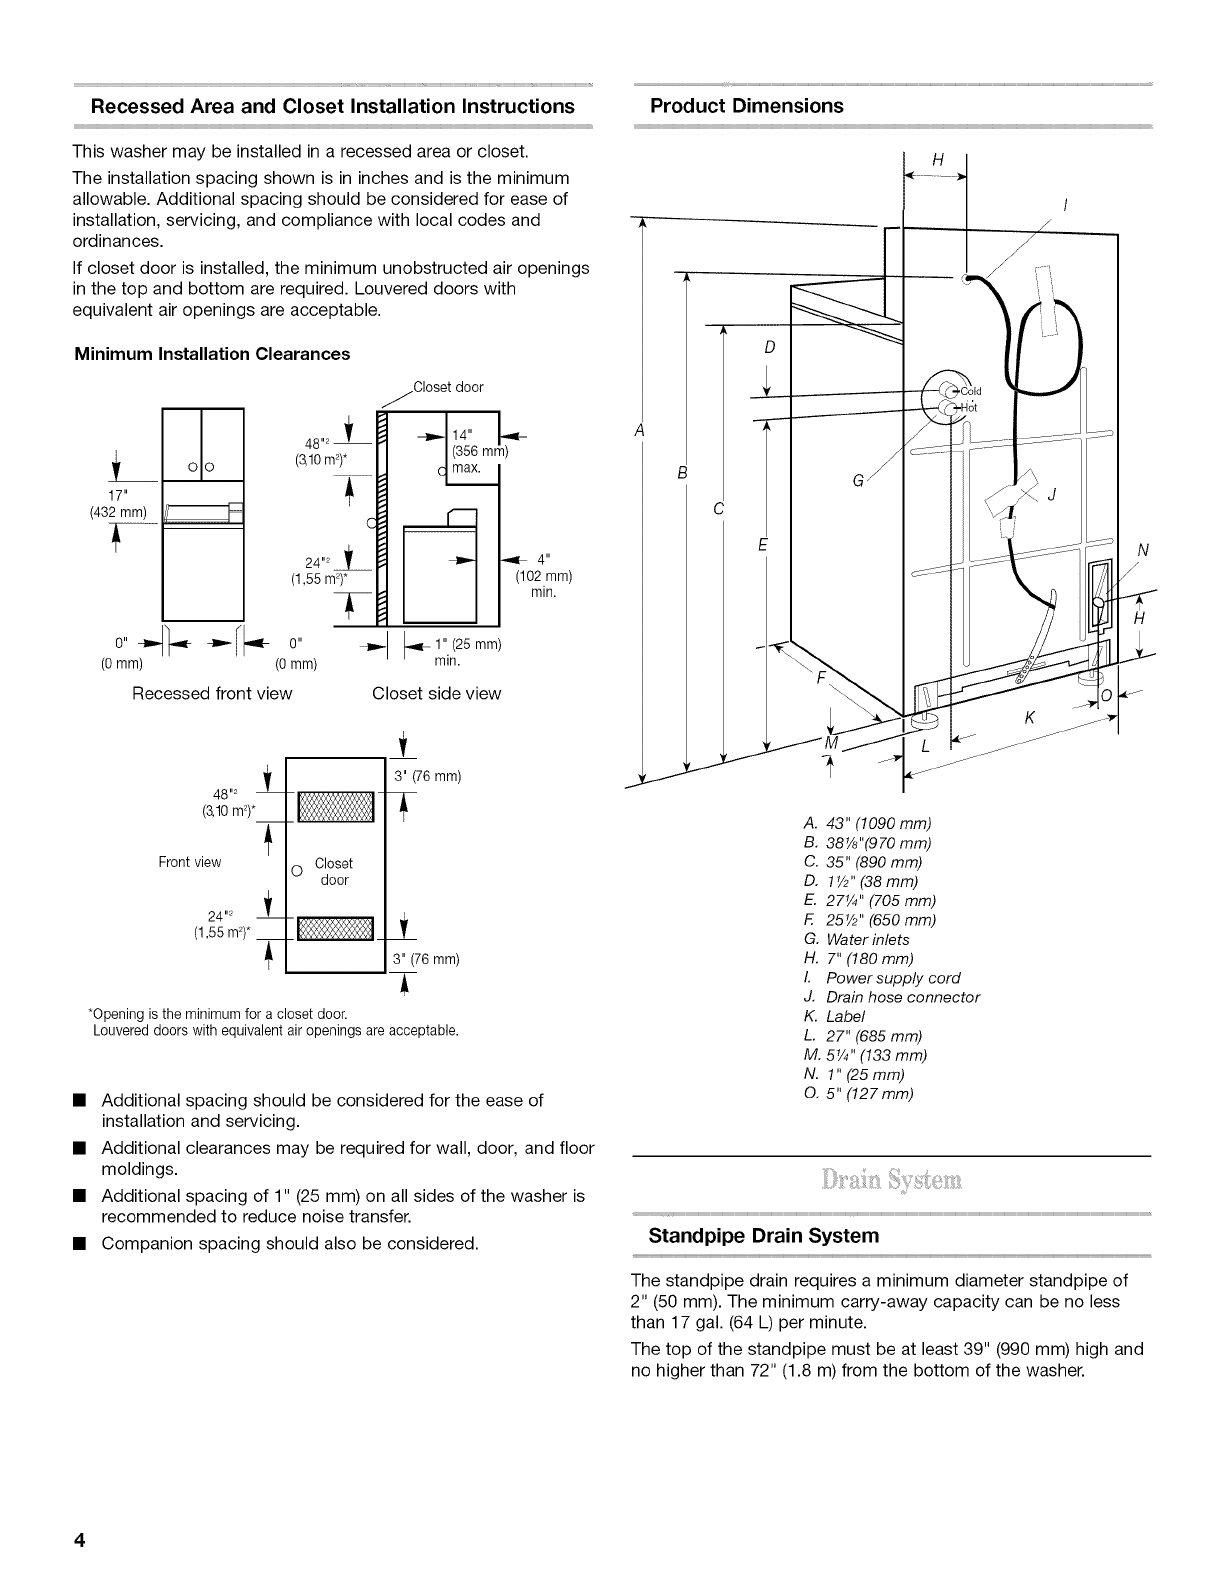 Fisher Paykel Washing Machine Wiring Diagram - de8060p2 fisher ... on wiring diagram for samsung dryer, wiring diagram for speed queen dryer, wiring diagram for fisher paykel dryer, wiring diagram whirlpool dryer, wiring diagram for admiral dryer, wiring diagram for roper dryer, wiring diagram for estate dryer, wiring diagram kenmore dryer, wiring diagram for amana dryer, diagram maytag stackable washer dryer, wiring diagram for frigidaire dryer, wiring diagram for clothes dryer, wiring diagram for hotpoint dryer, wiring diagram for sears dryer, wiring diagram for huebsch dryer, wiring diagram for dryer motor, wiring diagram for electrolux dryer,